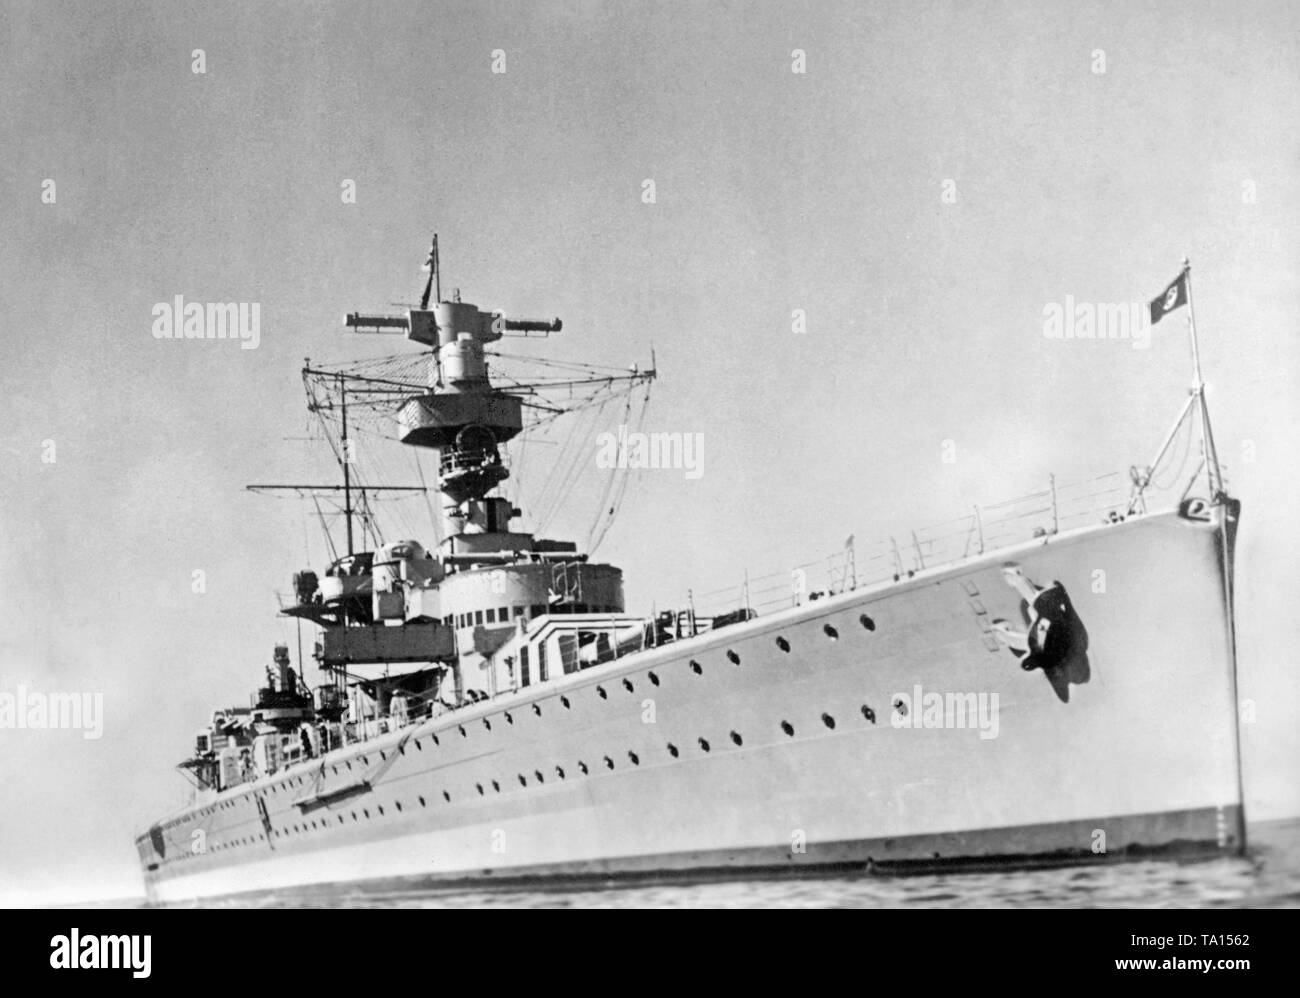 Photo of the heavy cruiser 'Luetzow' in January, 1940. In the autumn of 1940,'Deutschland' was renamed'Luetzow' (after Prussian general Adolf von Luetzow). It took part in the occupation of Norway after a general overhaul in the Gdansk shipyard in April, 1940. Aswastika flag is blowing at the bow. - Stock Image